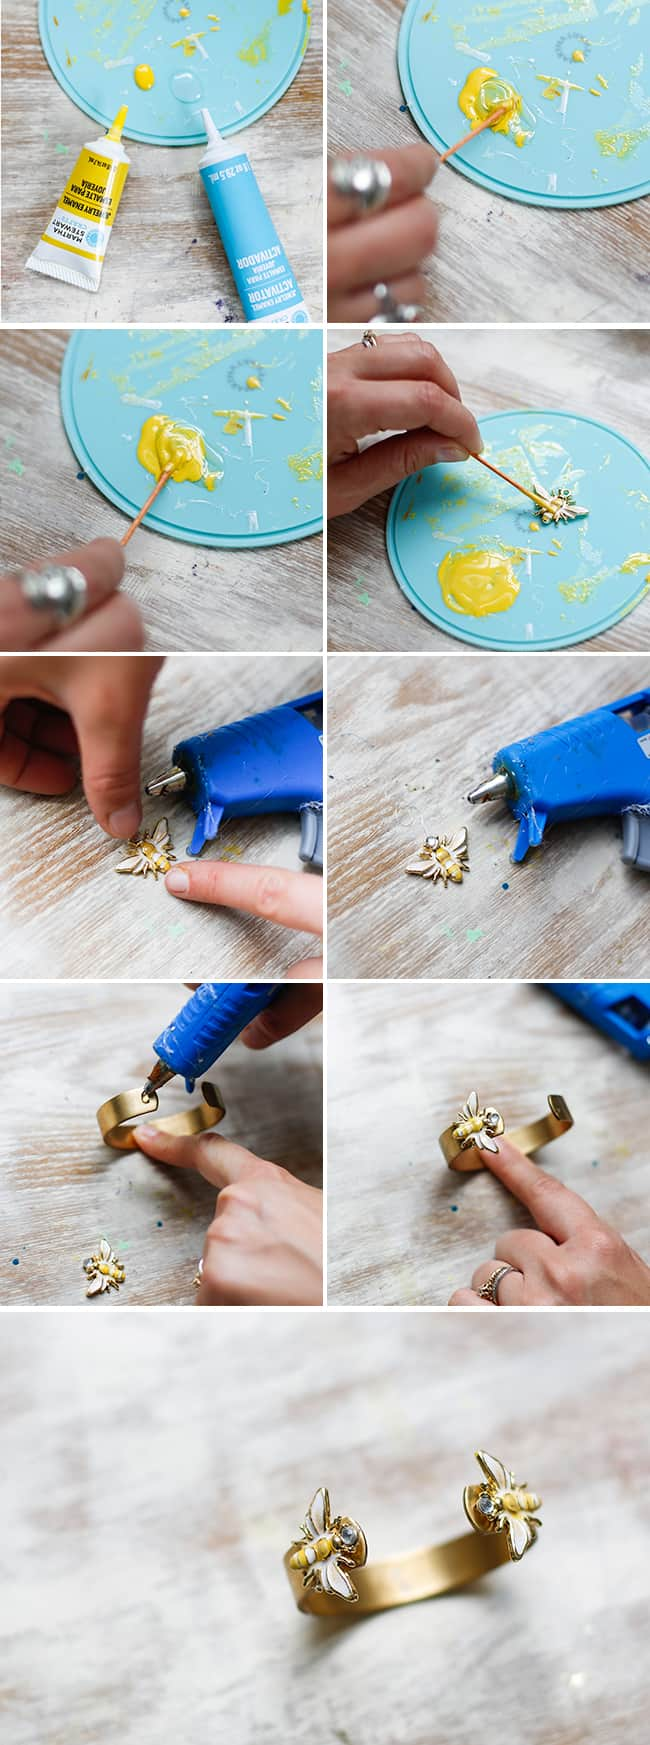 Make Your Own Trendy Bee Cuff